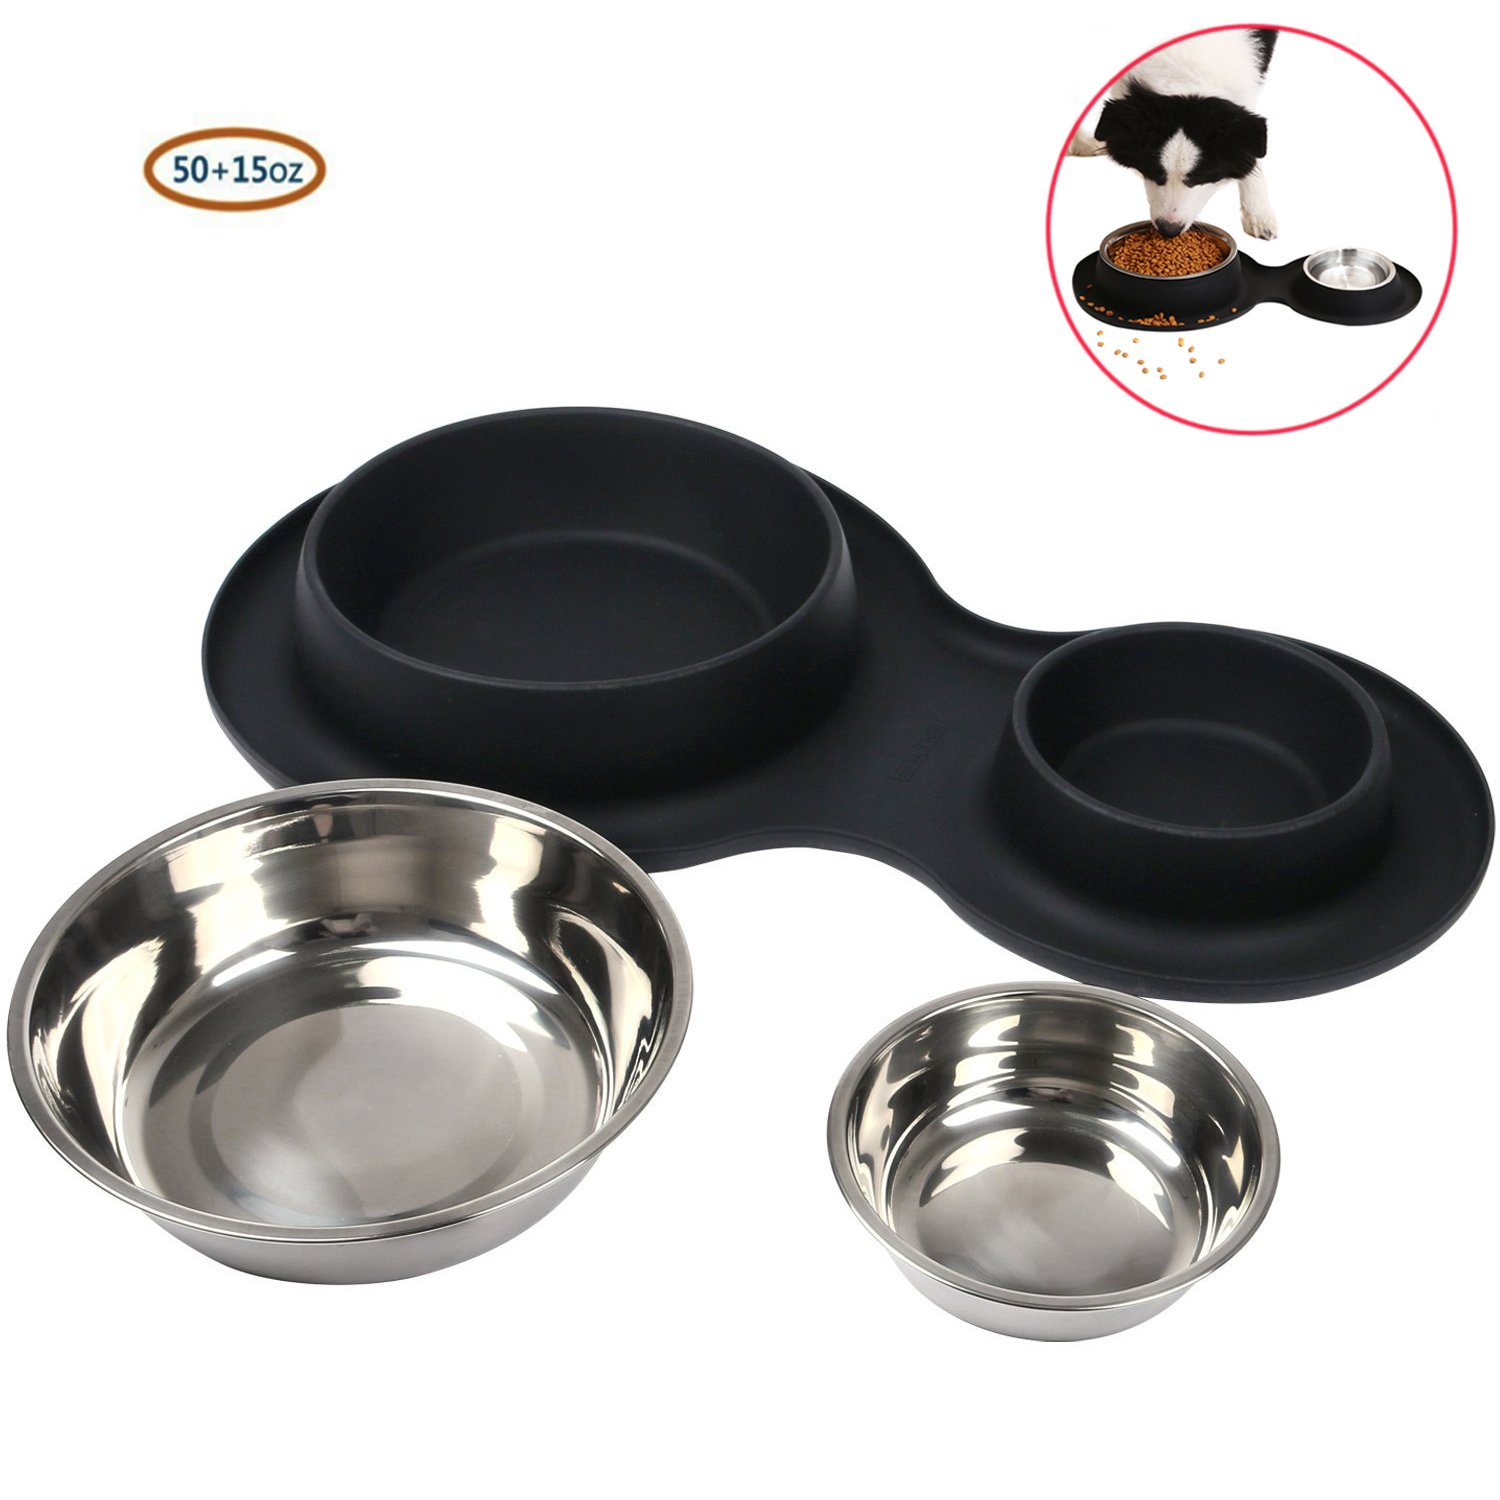 Pet Bowls Puppy Food Bowls Stainless Steel Dog Cat Bowls with No Spill Non-Skid Silicone Mat 15oz and 50oz Feeder Bowls for Small Dogs Cats Pet-Black